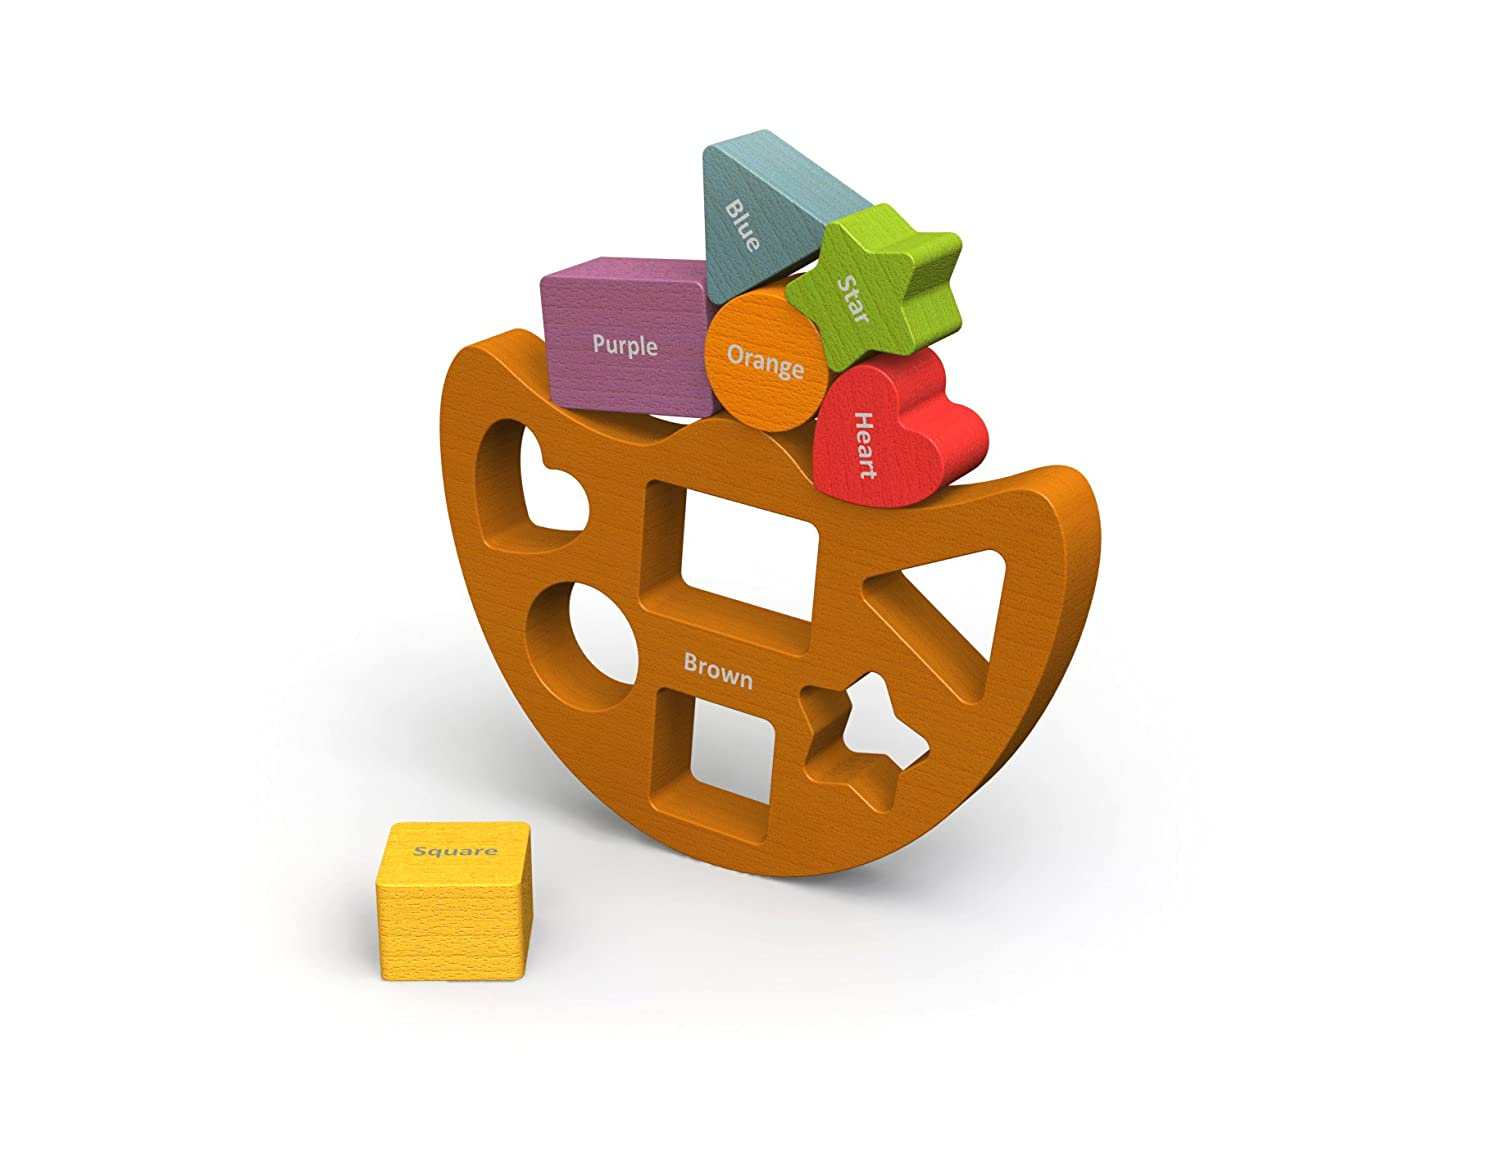 BeginAgain Balance Boat Shapes and Colors Make Learning Fun and Help Spark Your Child's Imagination Perfect for Learning Color Names Shapes and Spatial Awareness For Kids 2 and Up